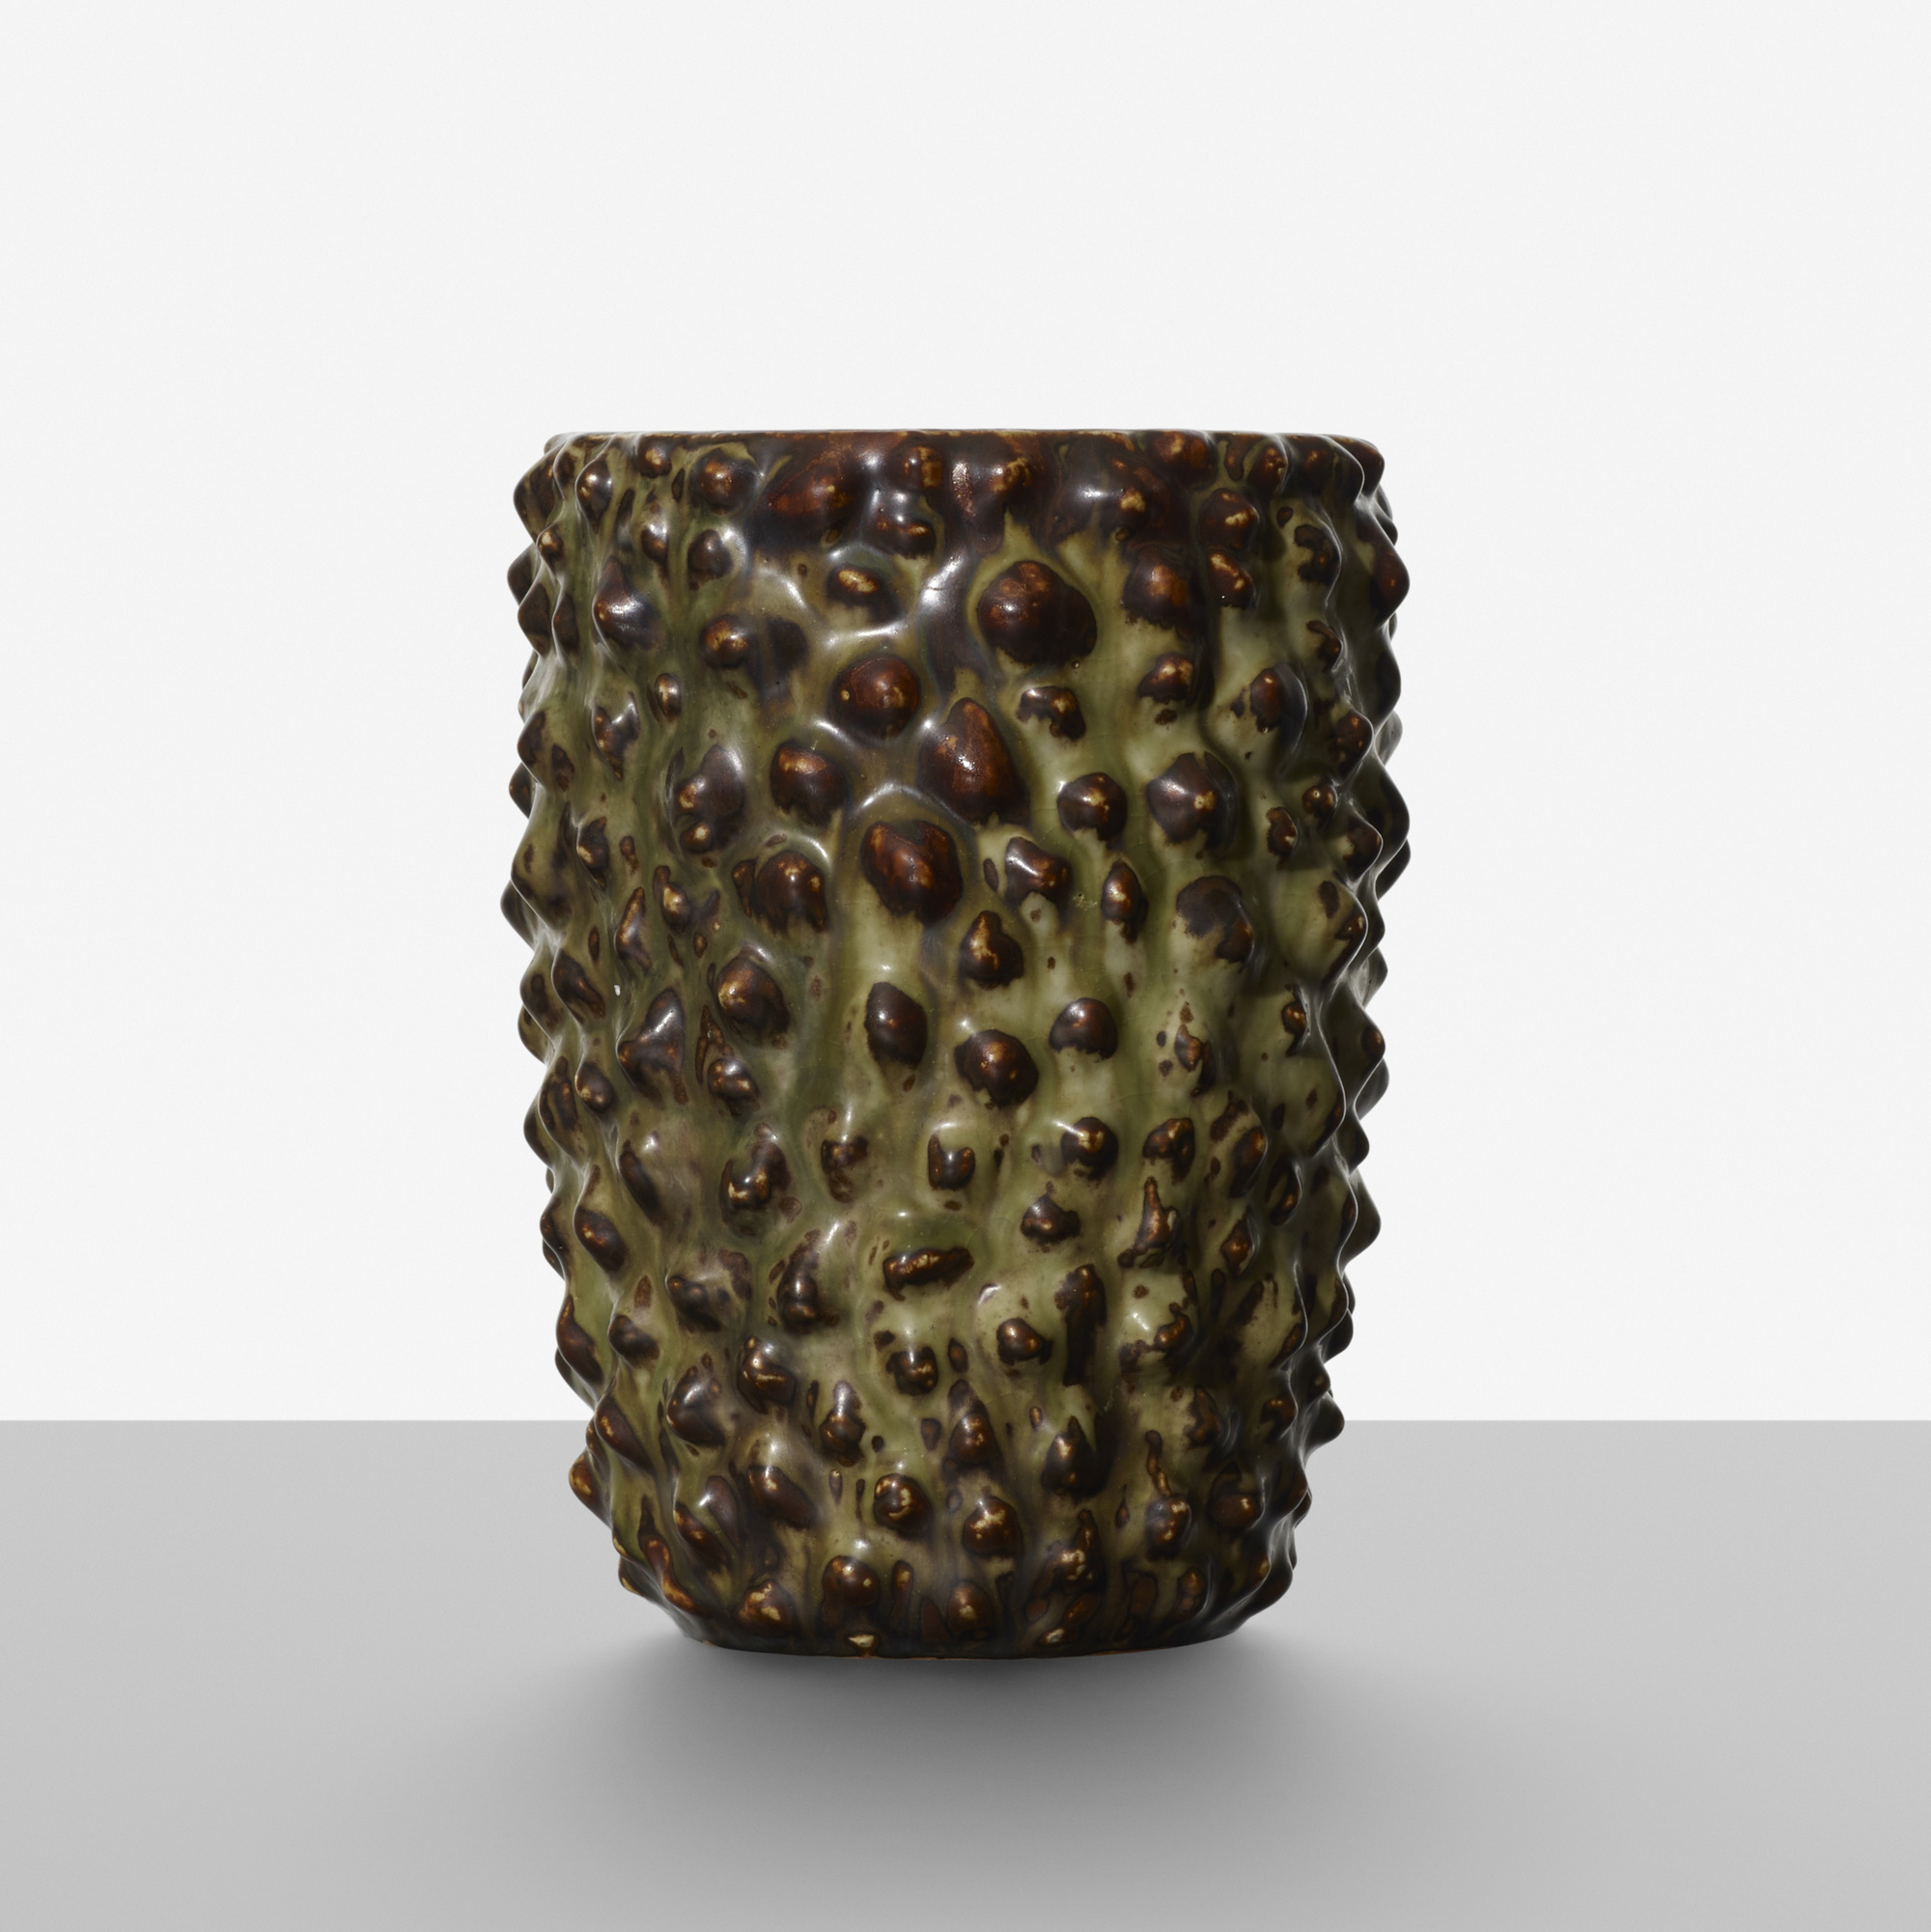 287: Axel Salto / Budding vase (1 of 3)